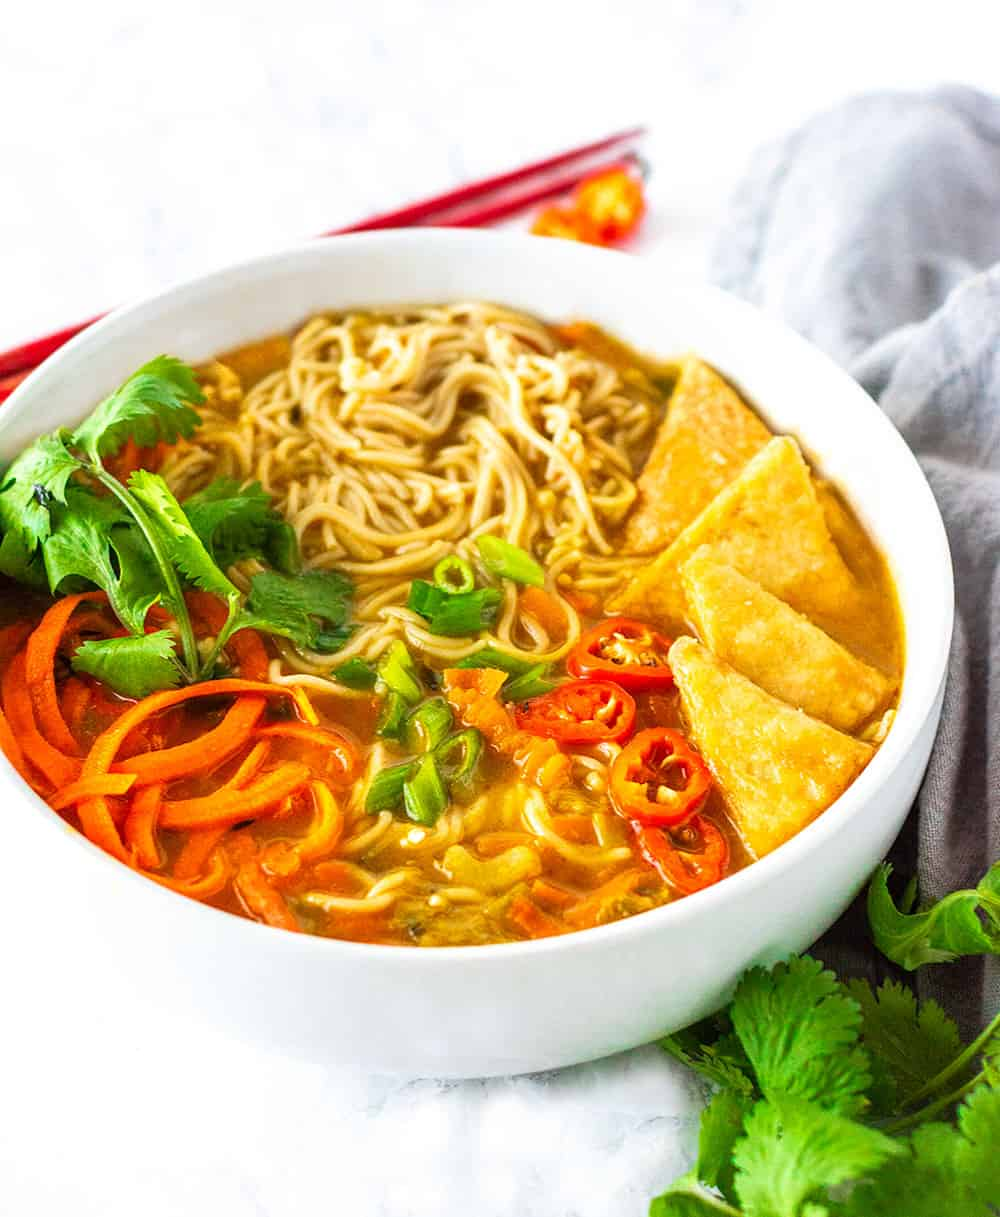 Gluten-free ramen noodle. spiralized carrot, fried tofu, red pepper slices , in a white bowl with cilantro leaves, red chopsticks on a white background and gray napkin